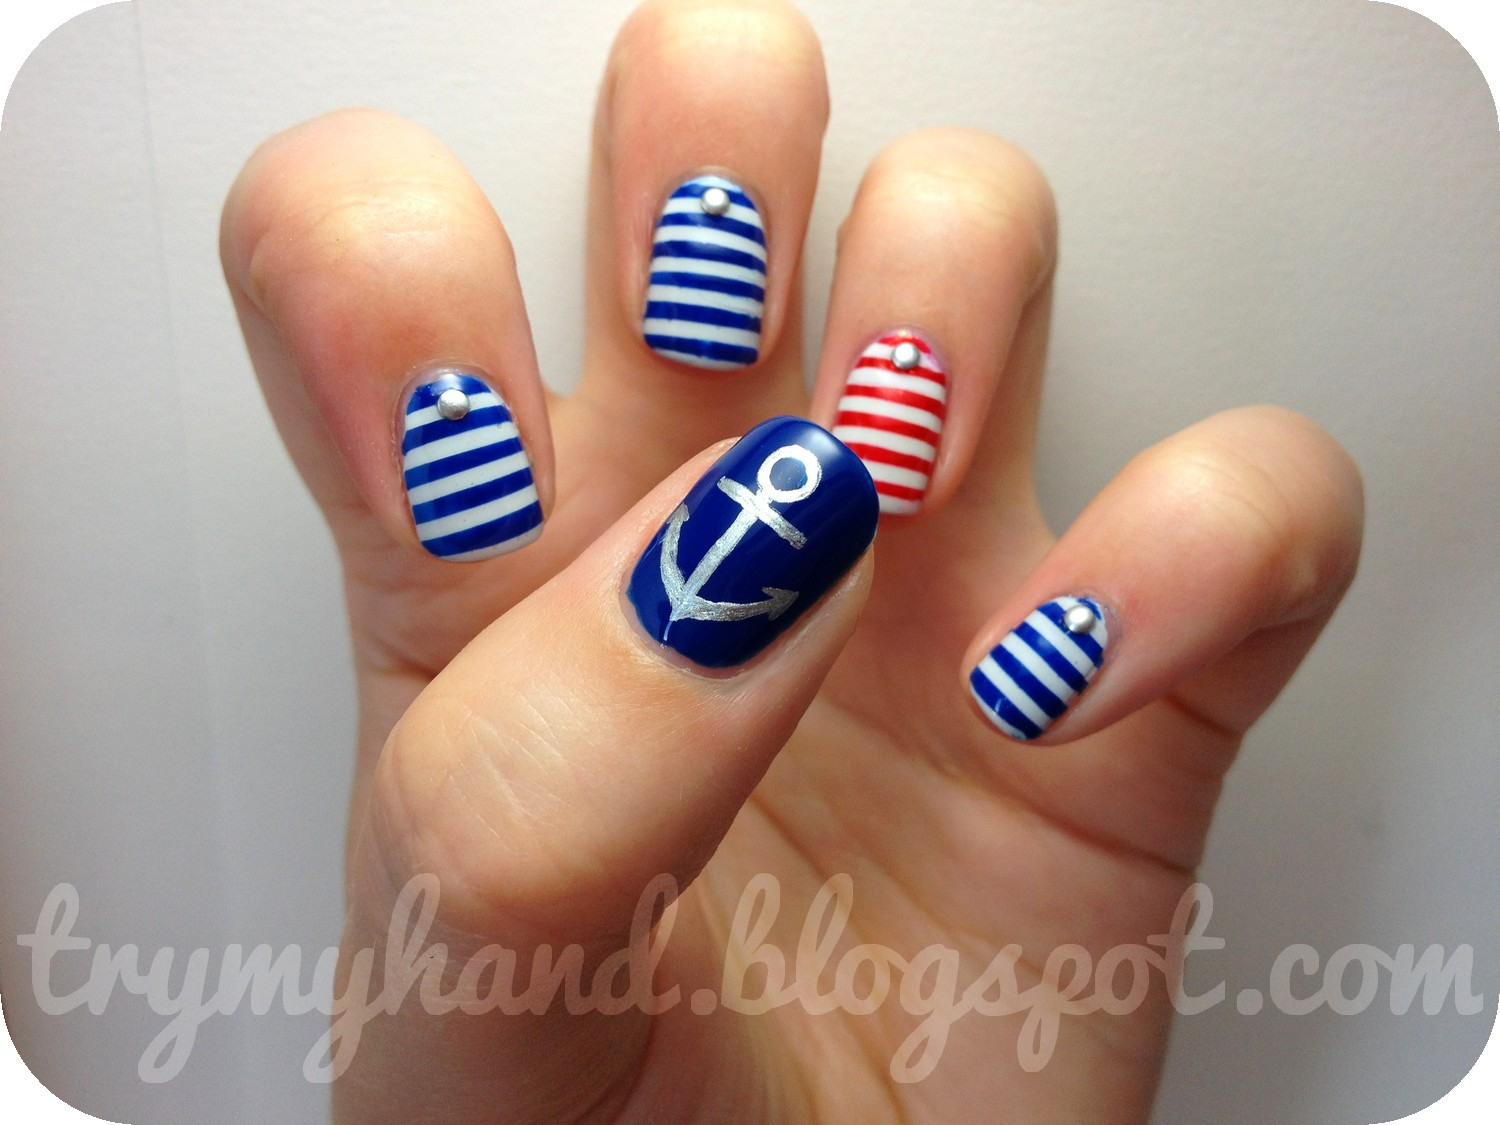 Try my hand alphabet nail art challenge n for nautical alphabet nail art challenge n for nautical prinsesfo Gallery